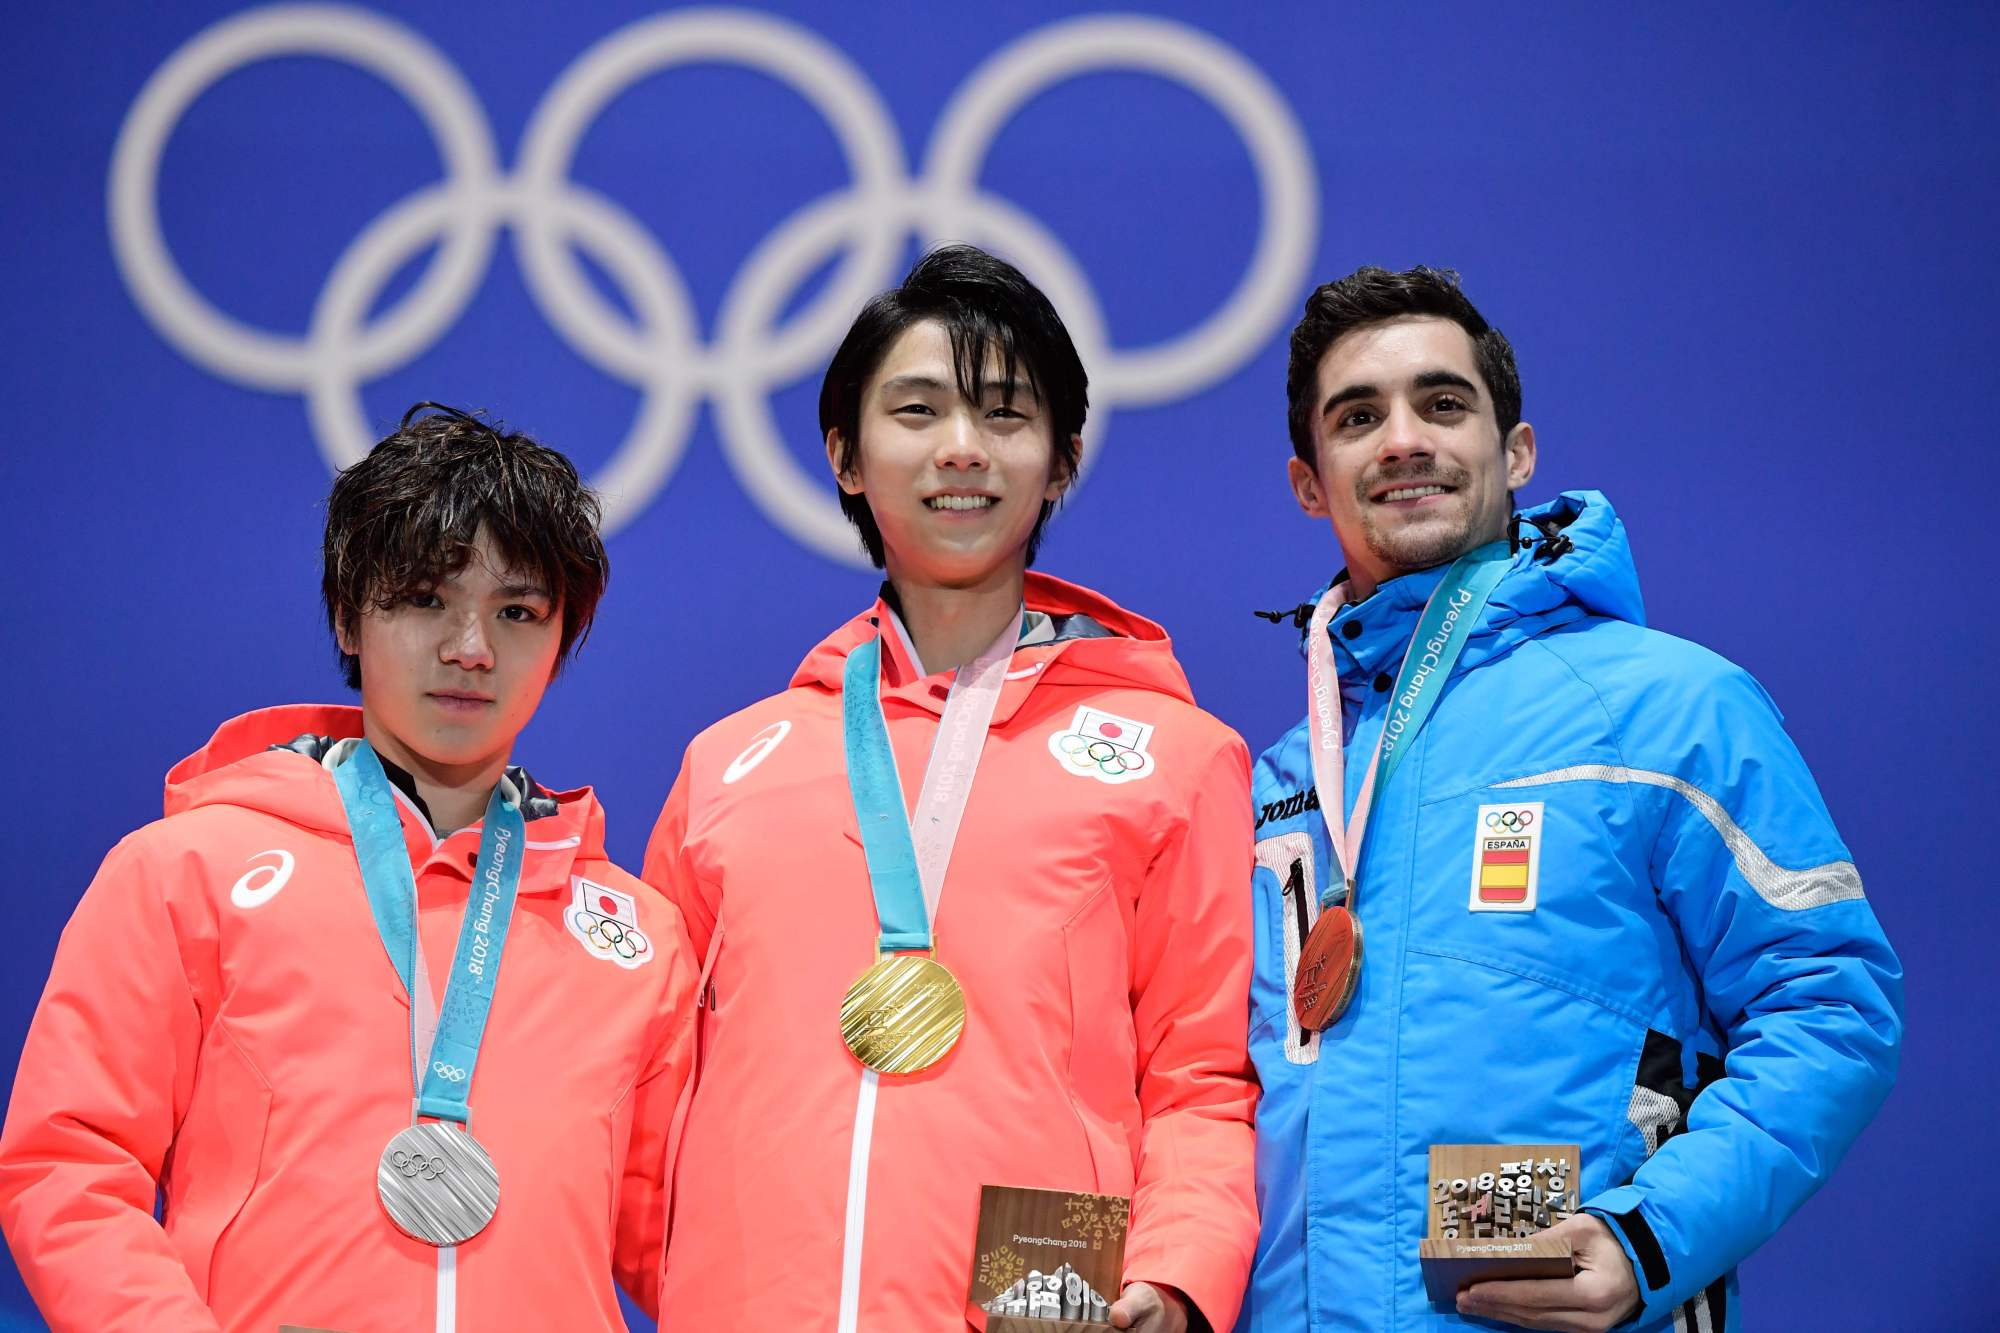 Men's figure skating gold medalist Yuzuru Hanyu (center) stands with silver medalist Shoma Uno (left) and bronze medalist Javier Fernandez during the medal ceremony on Saturday in Pyeongchang, South Korea. | AFP-JIJI